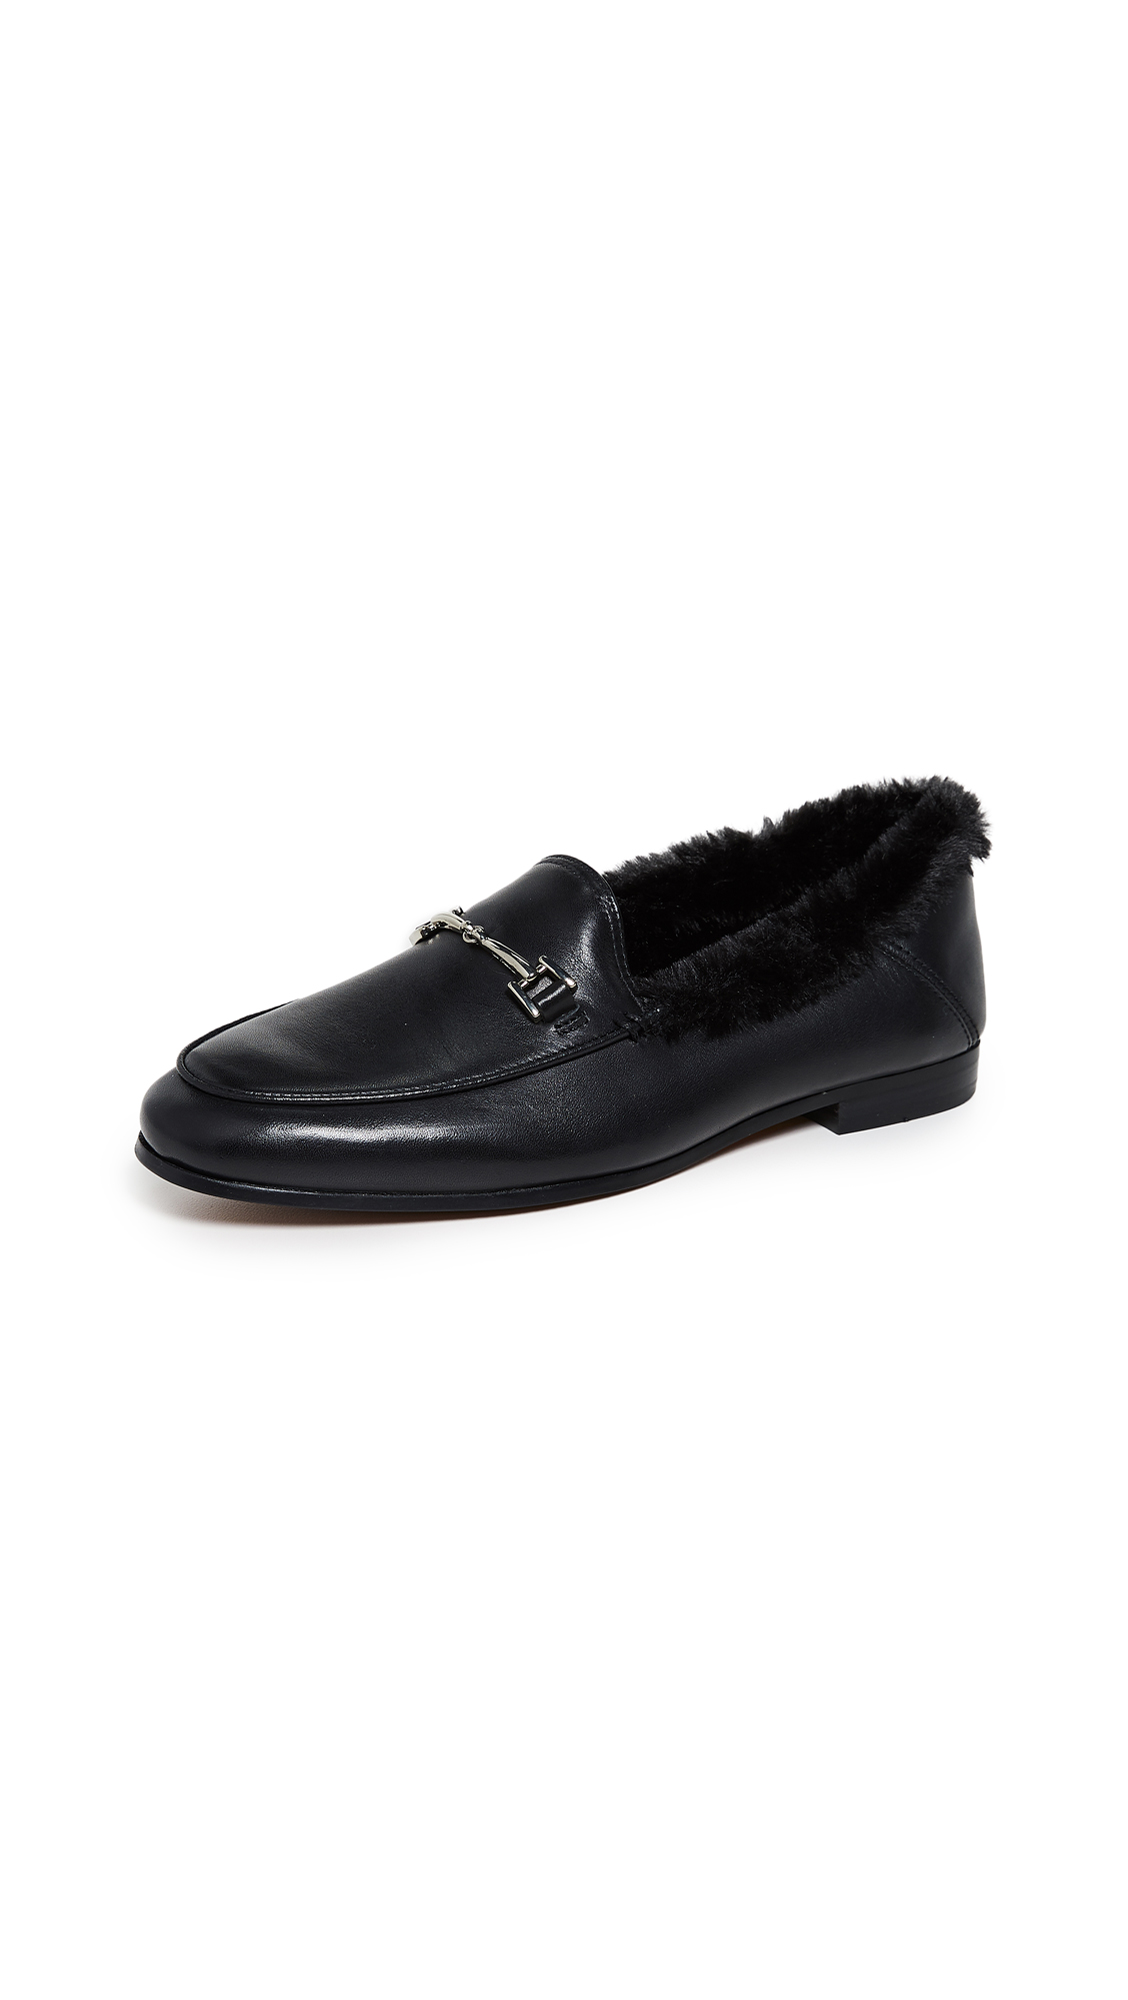 Loraine Faux-Fur Leather Loafers in Black